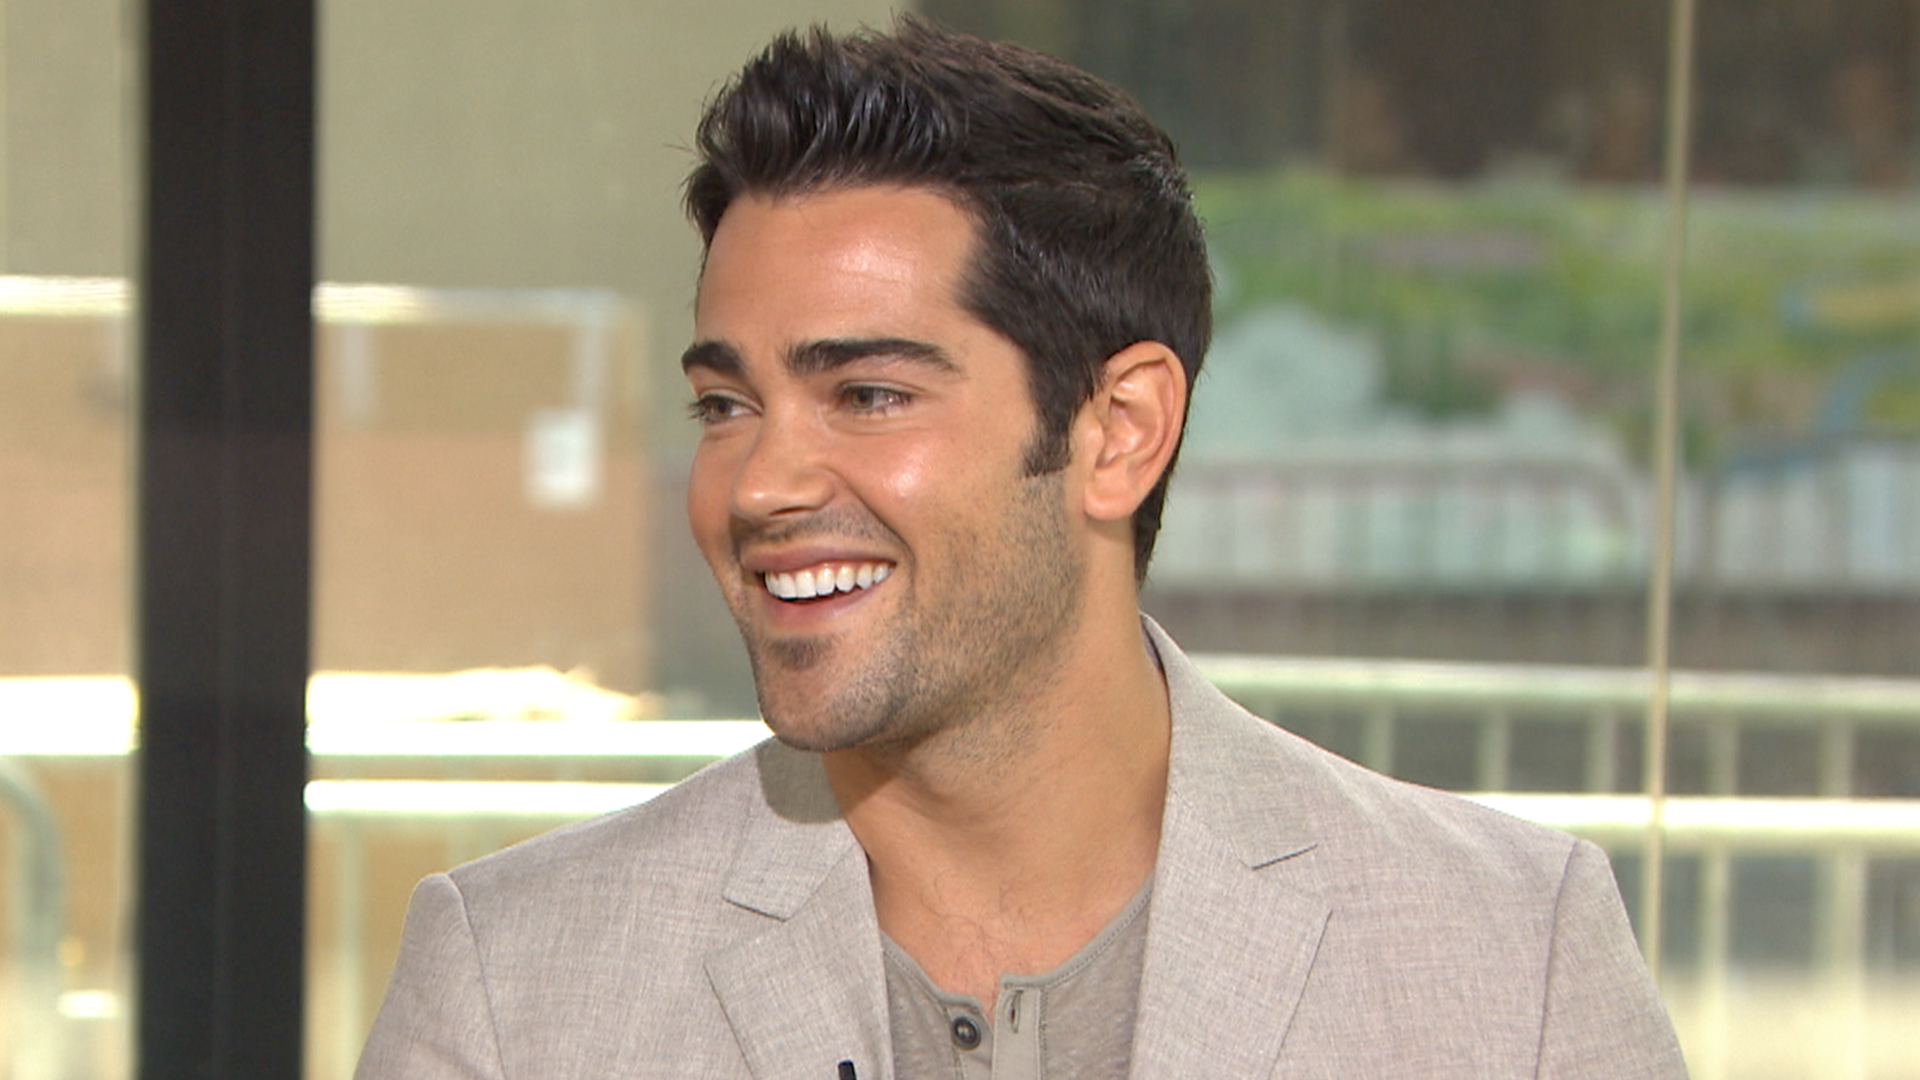 metcalfe personals He plays a cheating high-school jock in the comedy john tucker must die, but in real life jesse metcalfe is.